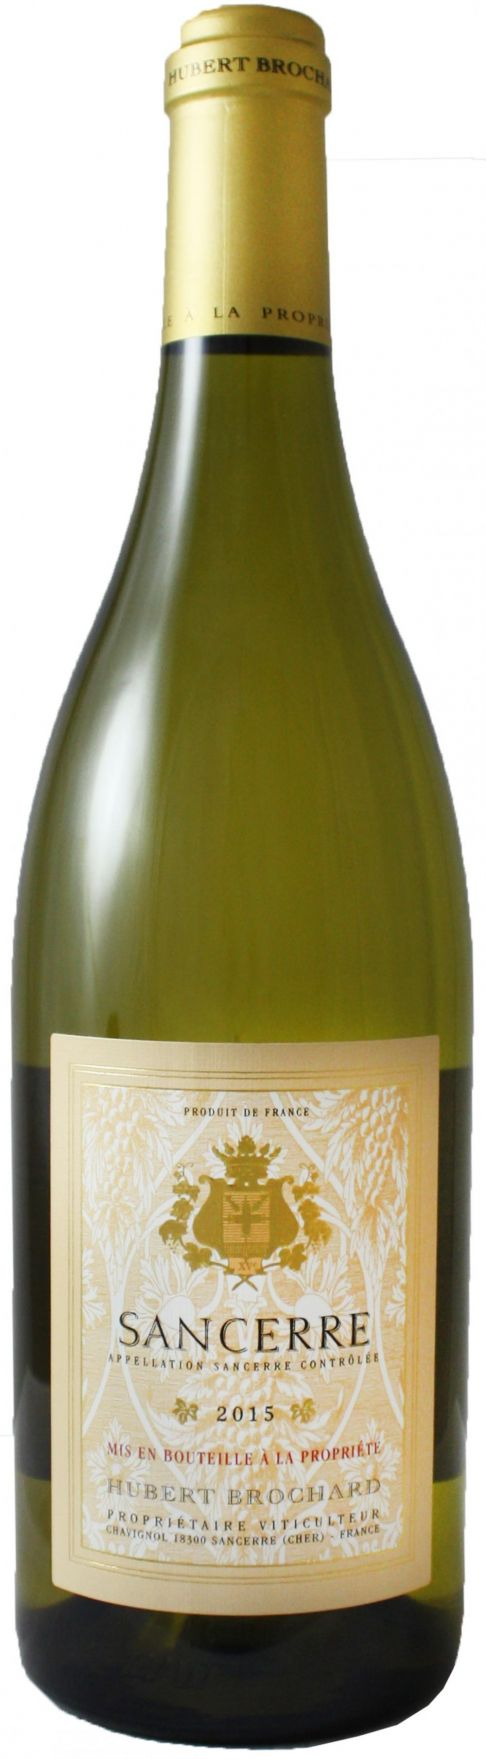 SANCERRE 2017 HUBERT BROCHARD